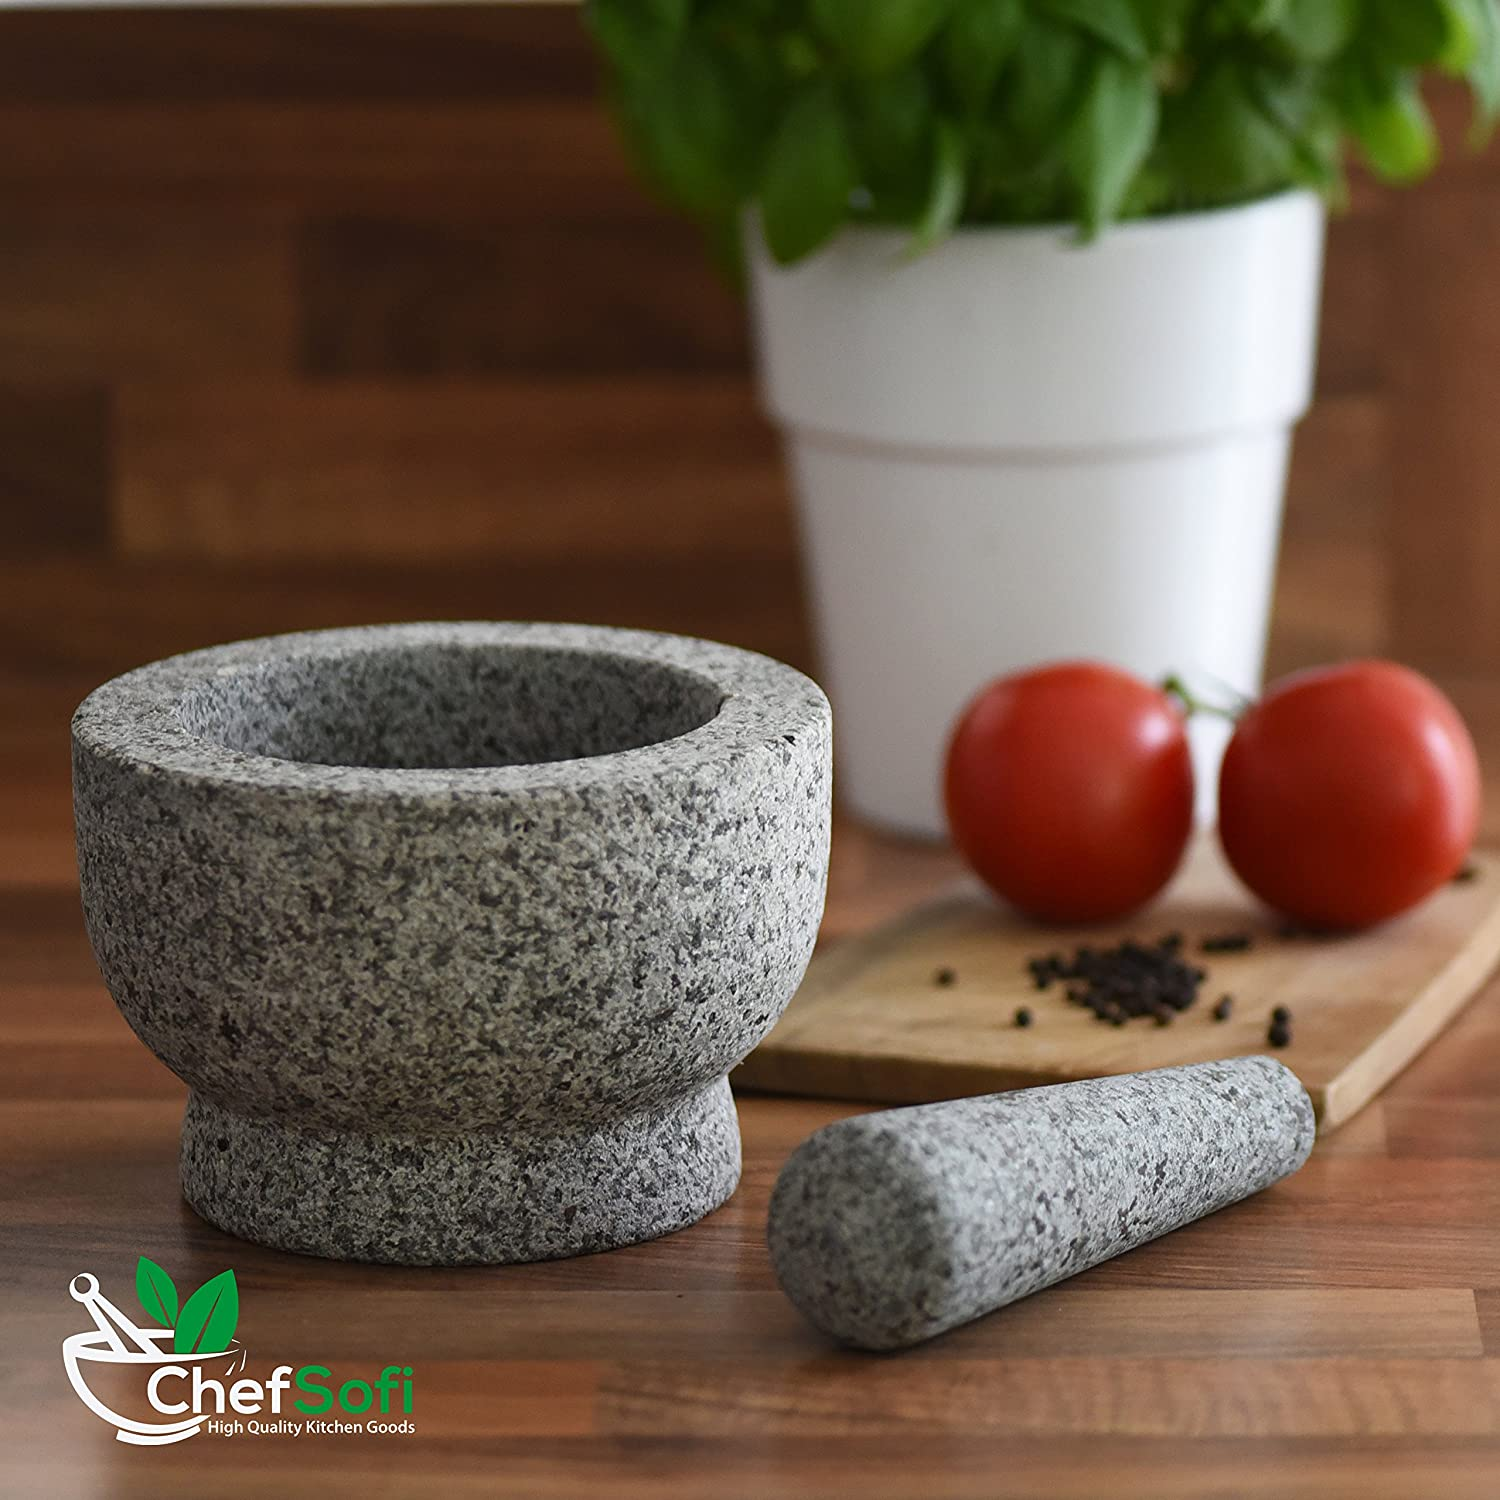 ChefSofi Mortar and Pestle Set  6 Inch  2 Cup Capacity  Unpolished Heavy Granite for Enhanced